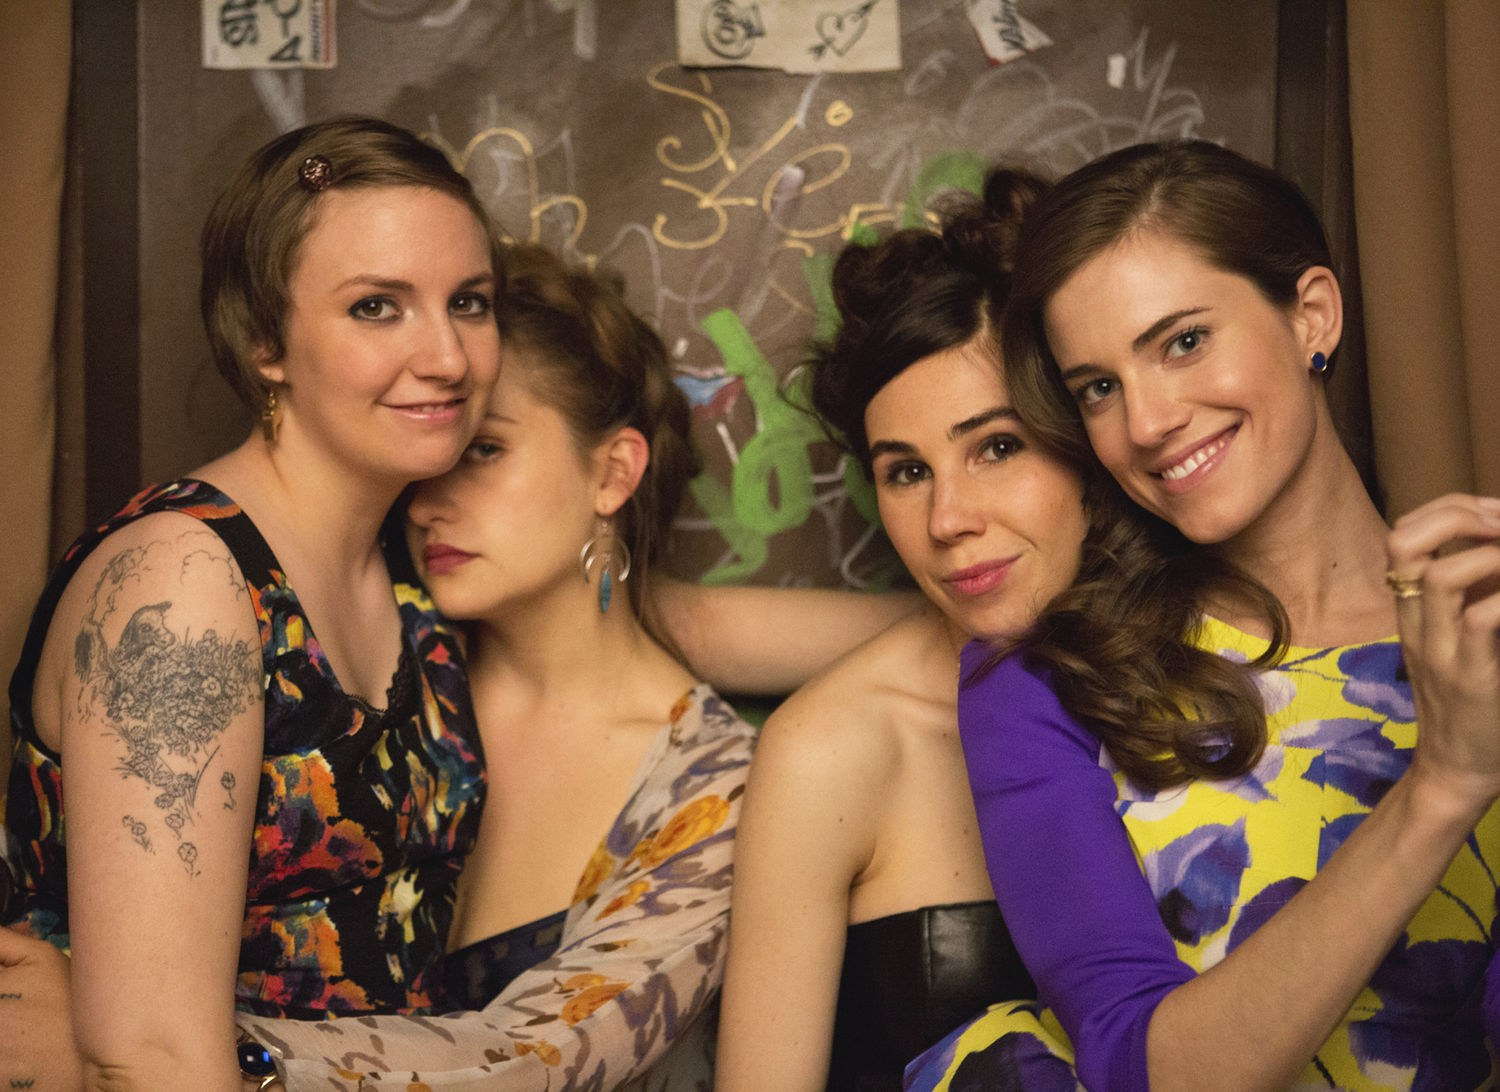 four white girls in their 20s pose for photos in a booth together on Girls